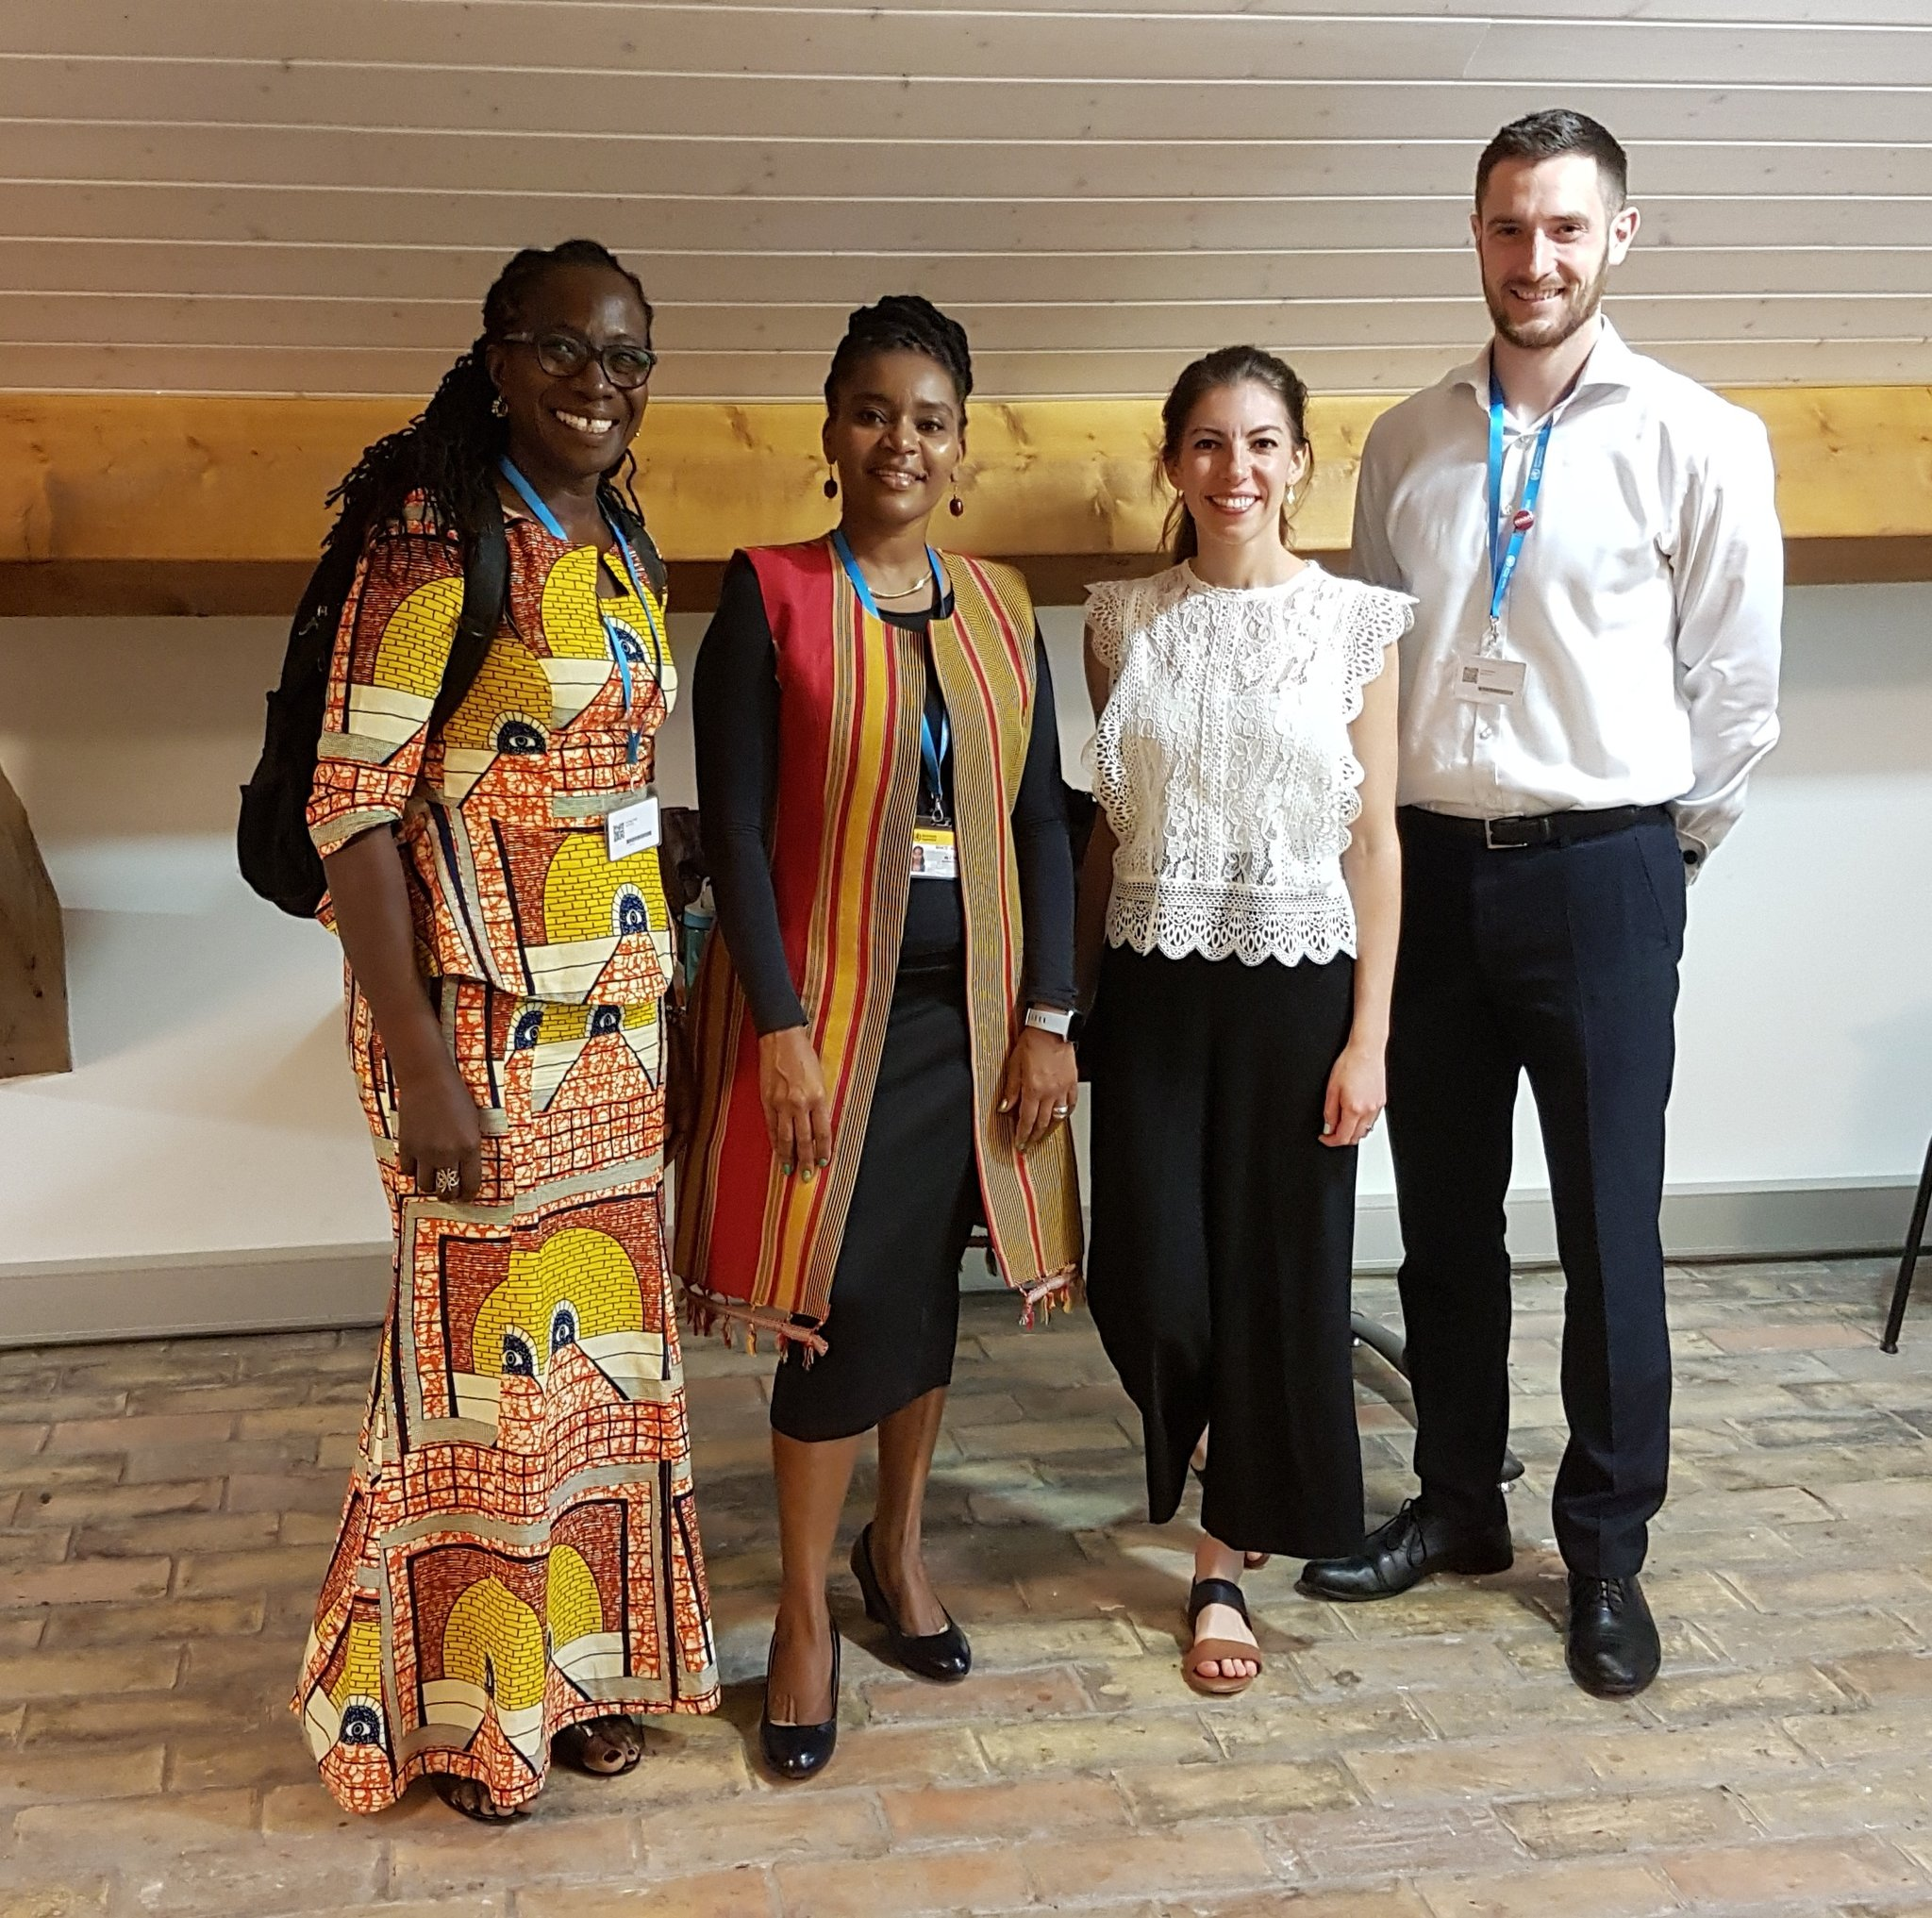 Dedo Mate Kodjo, Lucy Murage, Megan Wilson-Jones and Callum Northcote at the nutrition side event.